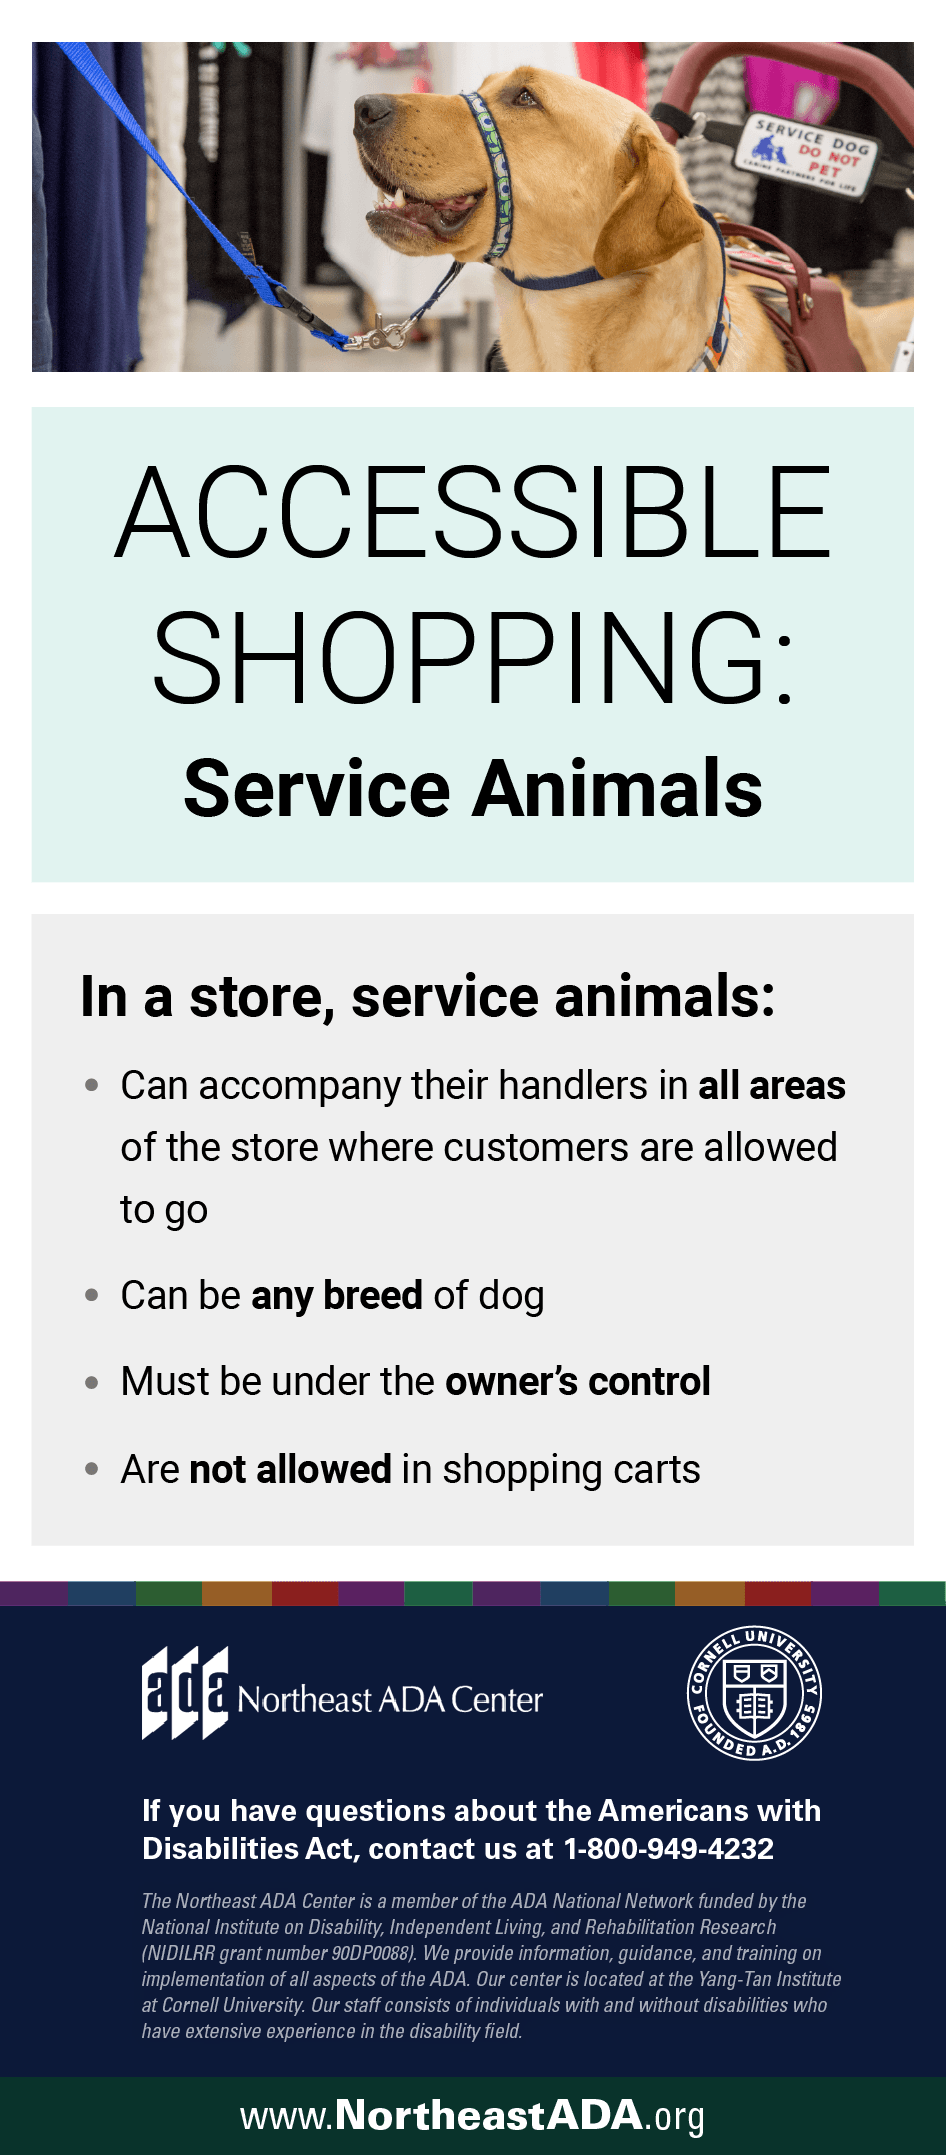 Infographic titled 'Accessible Shopping: Service Animals' featuring an image of a service dog on a leash.